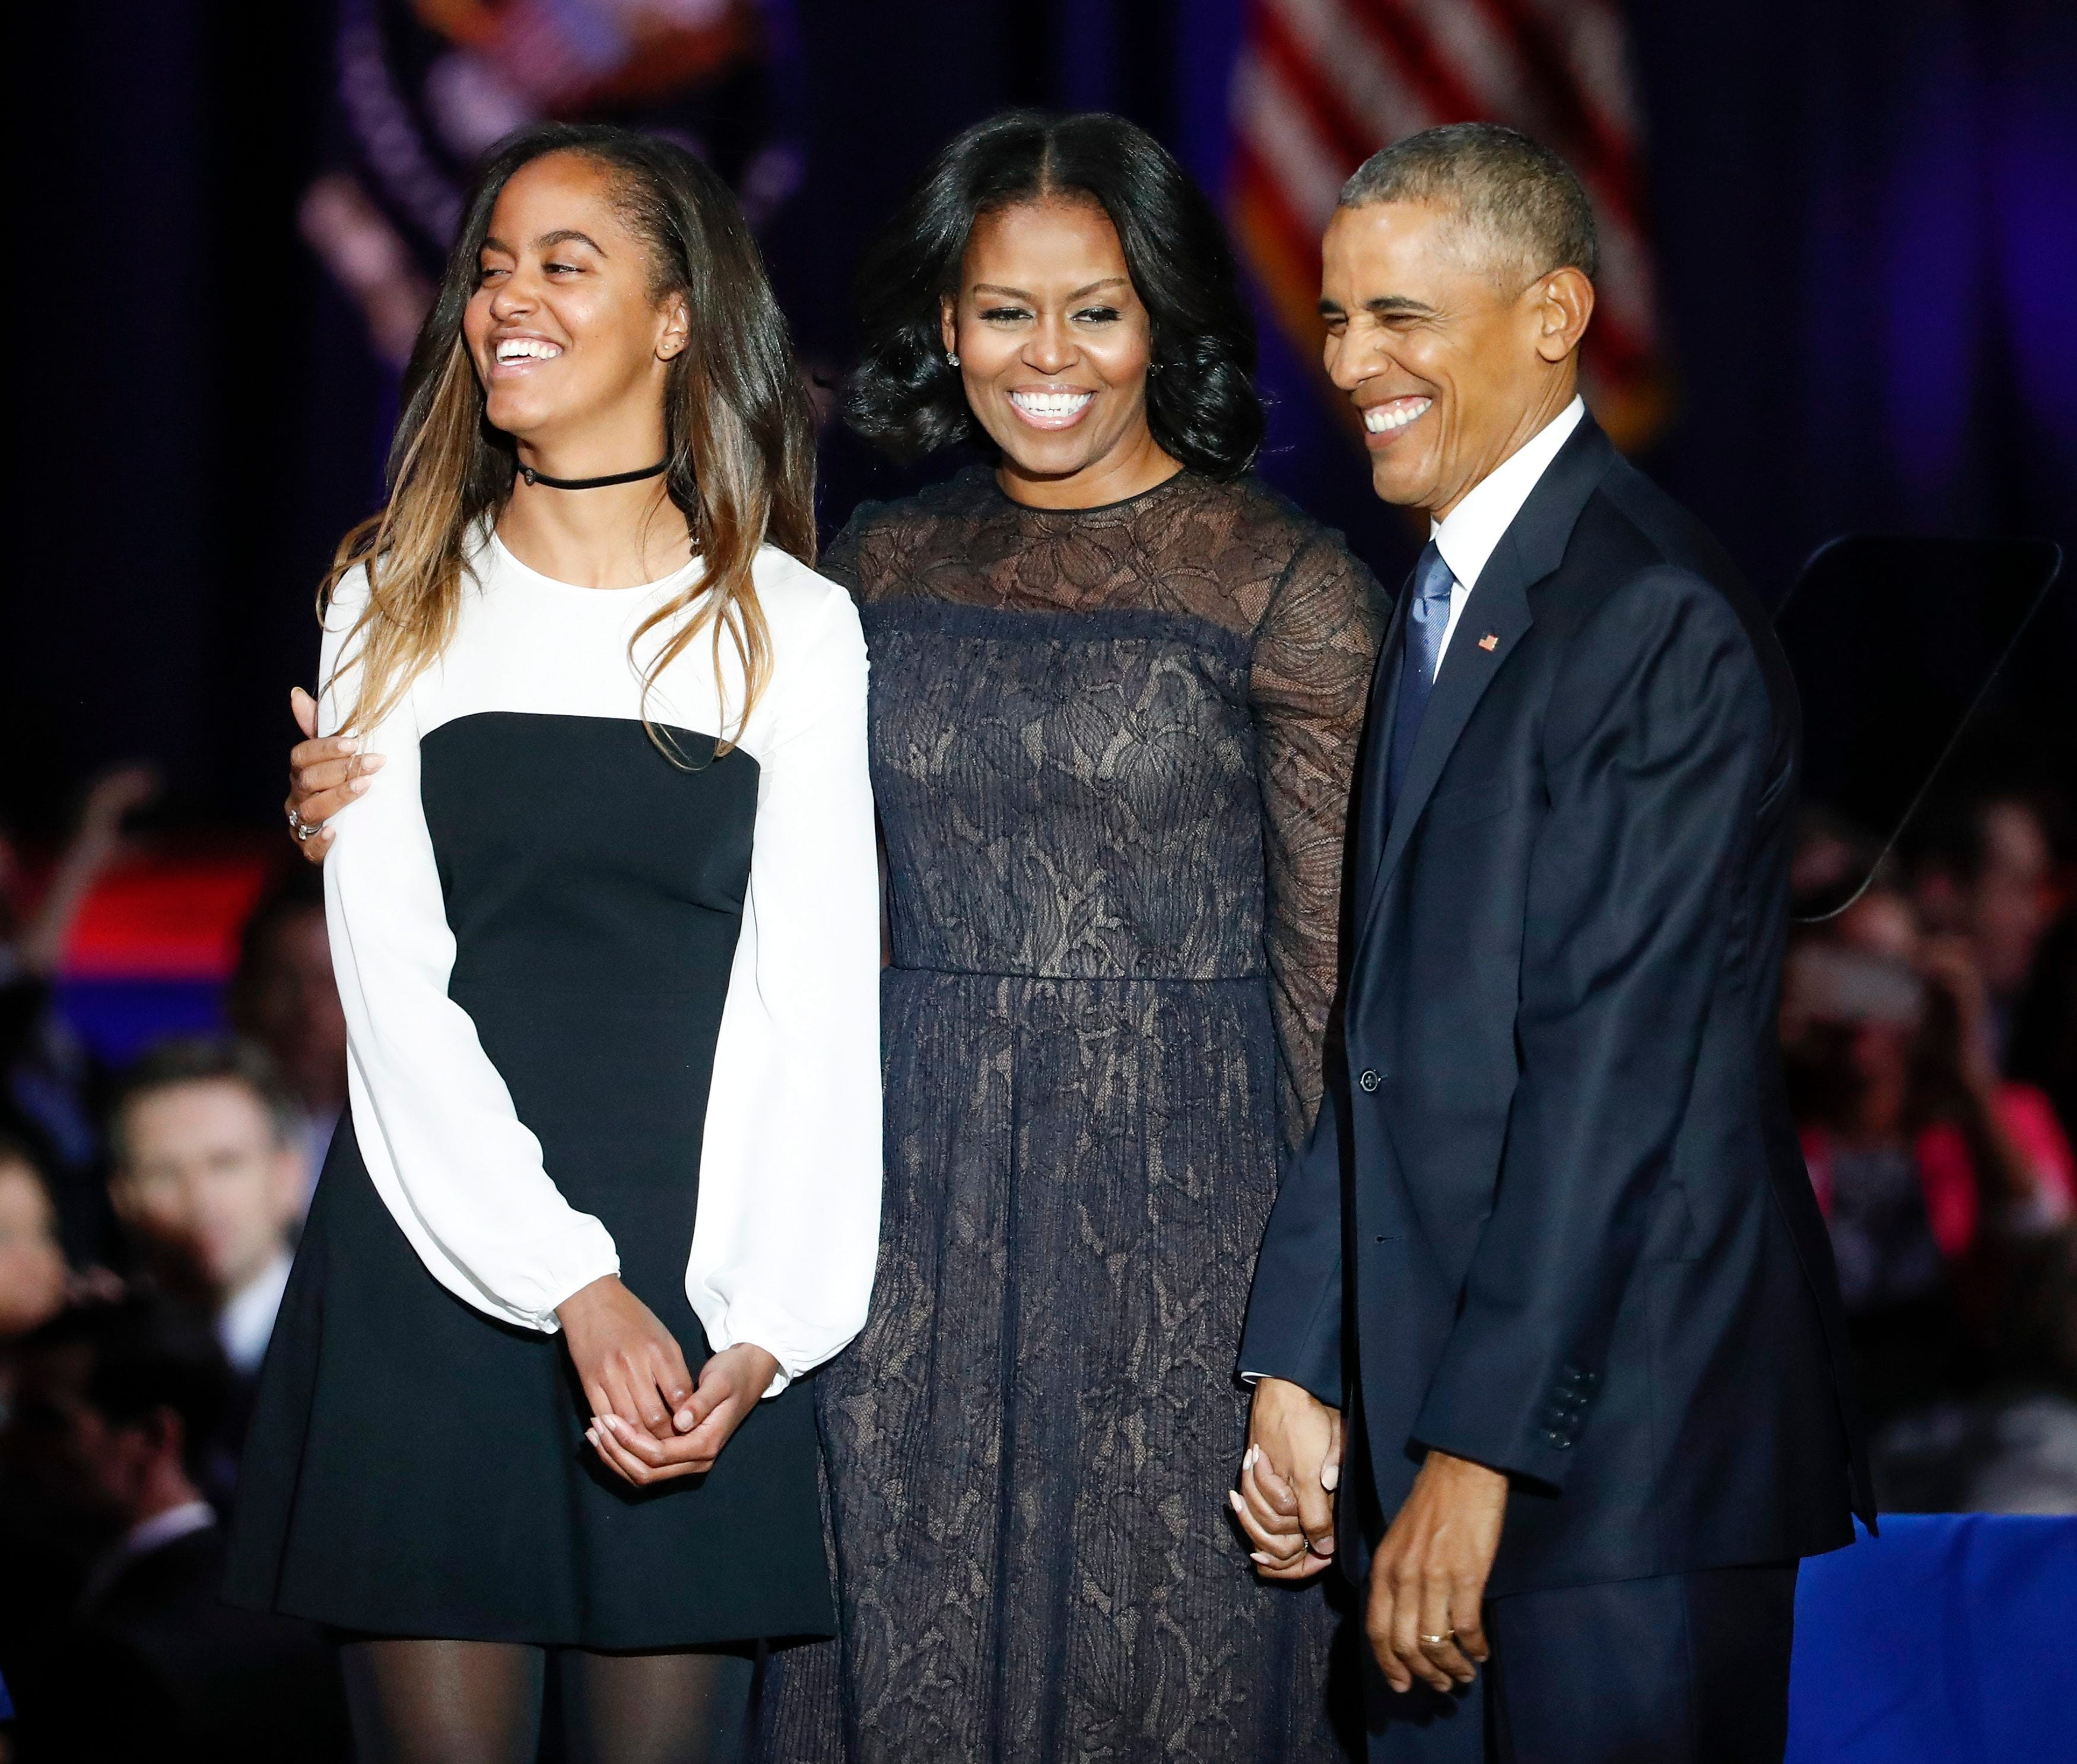 Malia Obama is a video star, makes her debut in indie band's music video